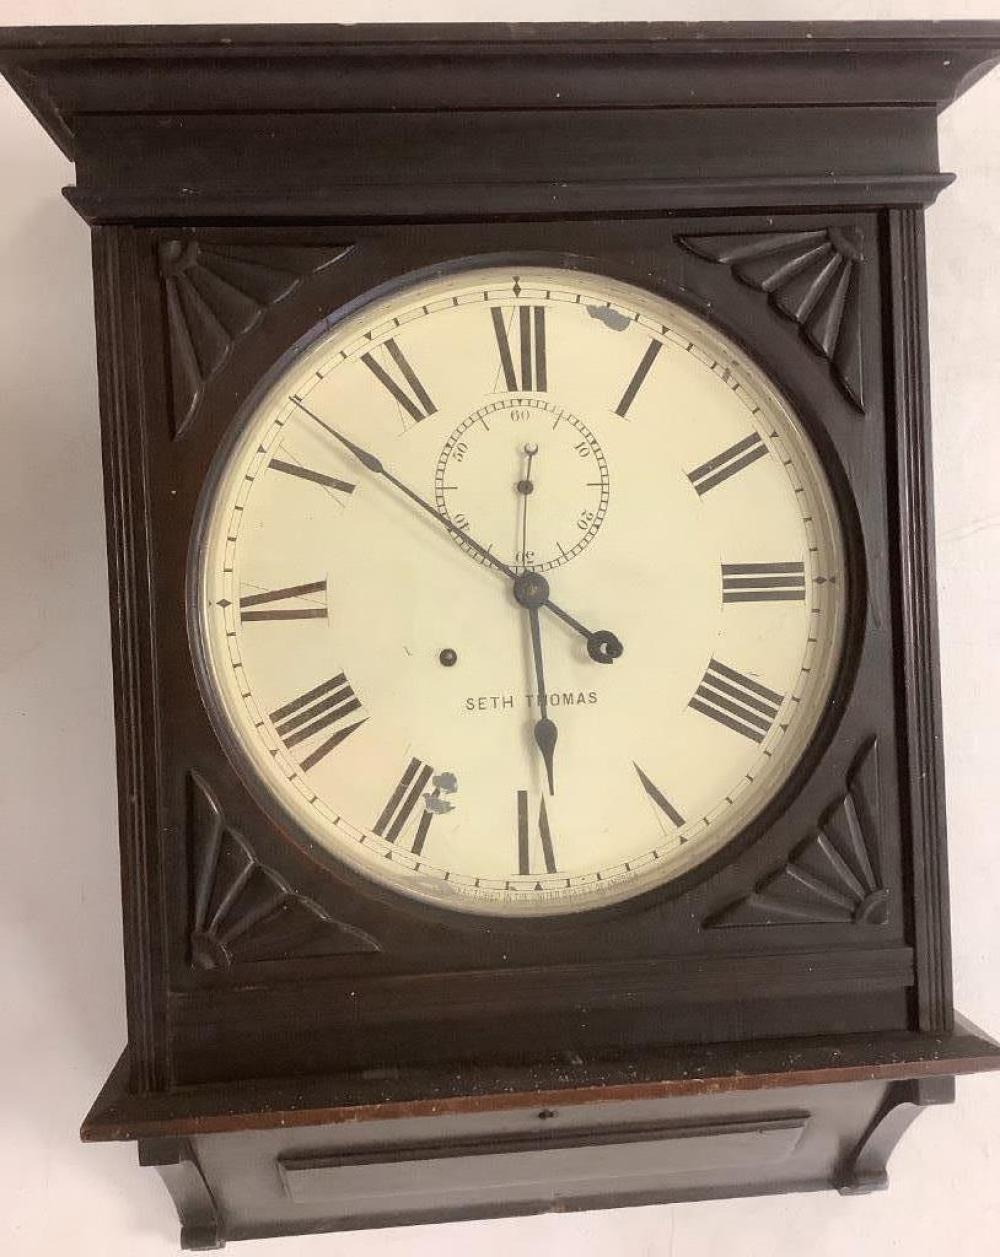 "Seth Thomas Regulator Clock 27""H"